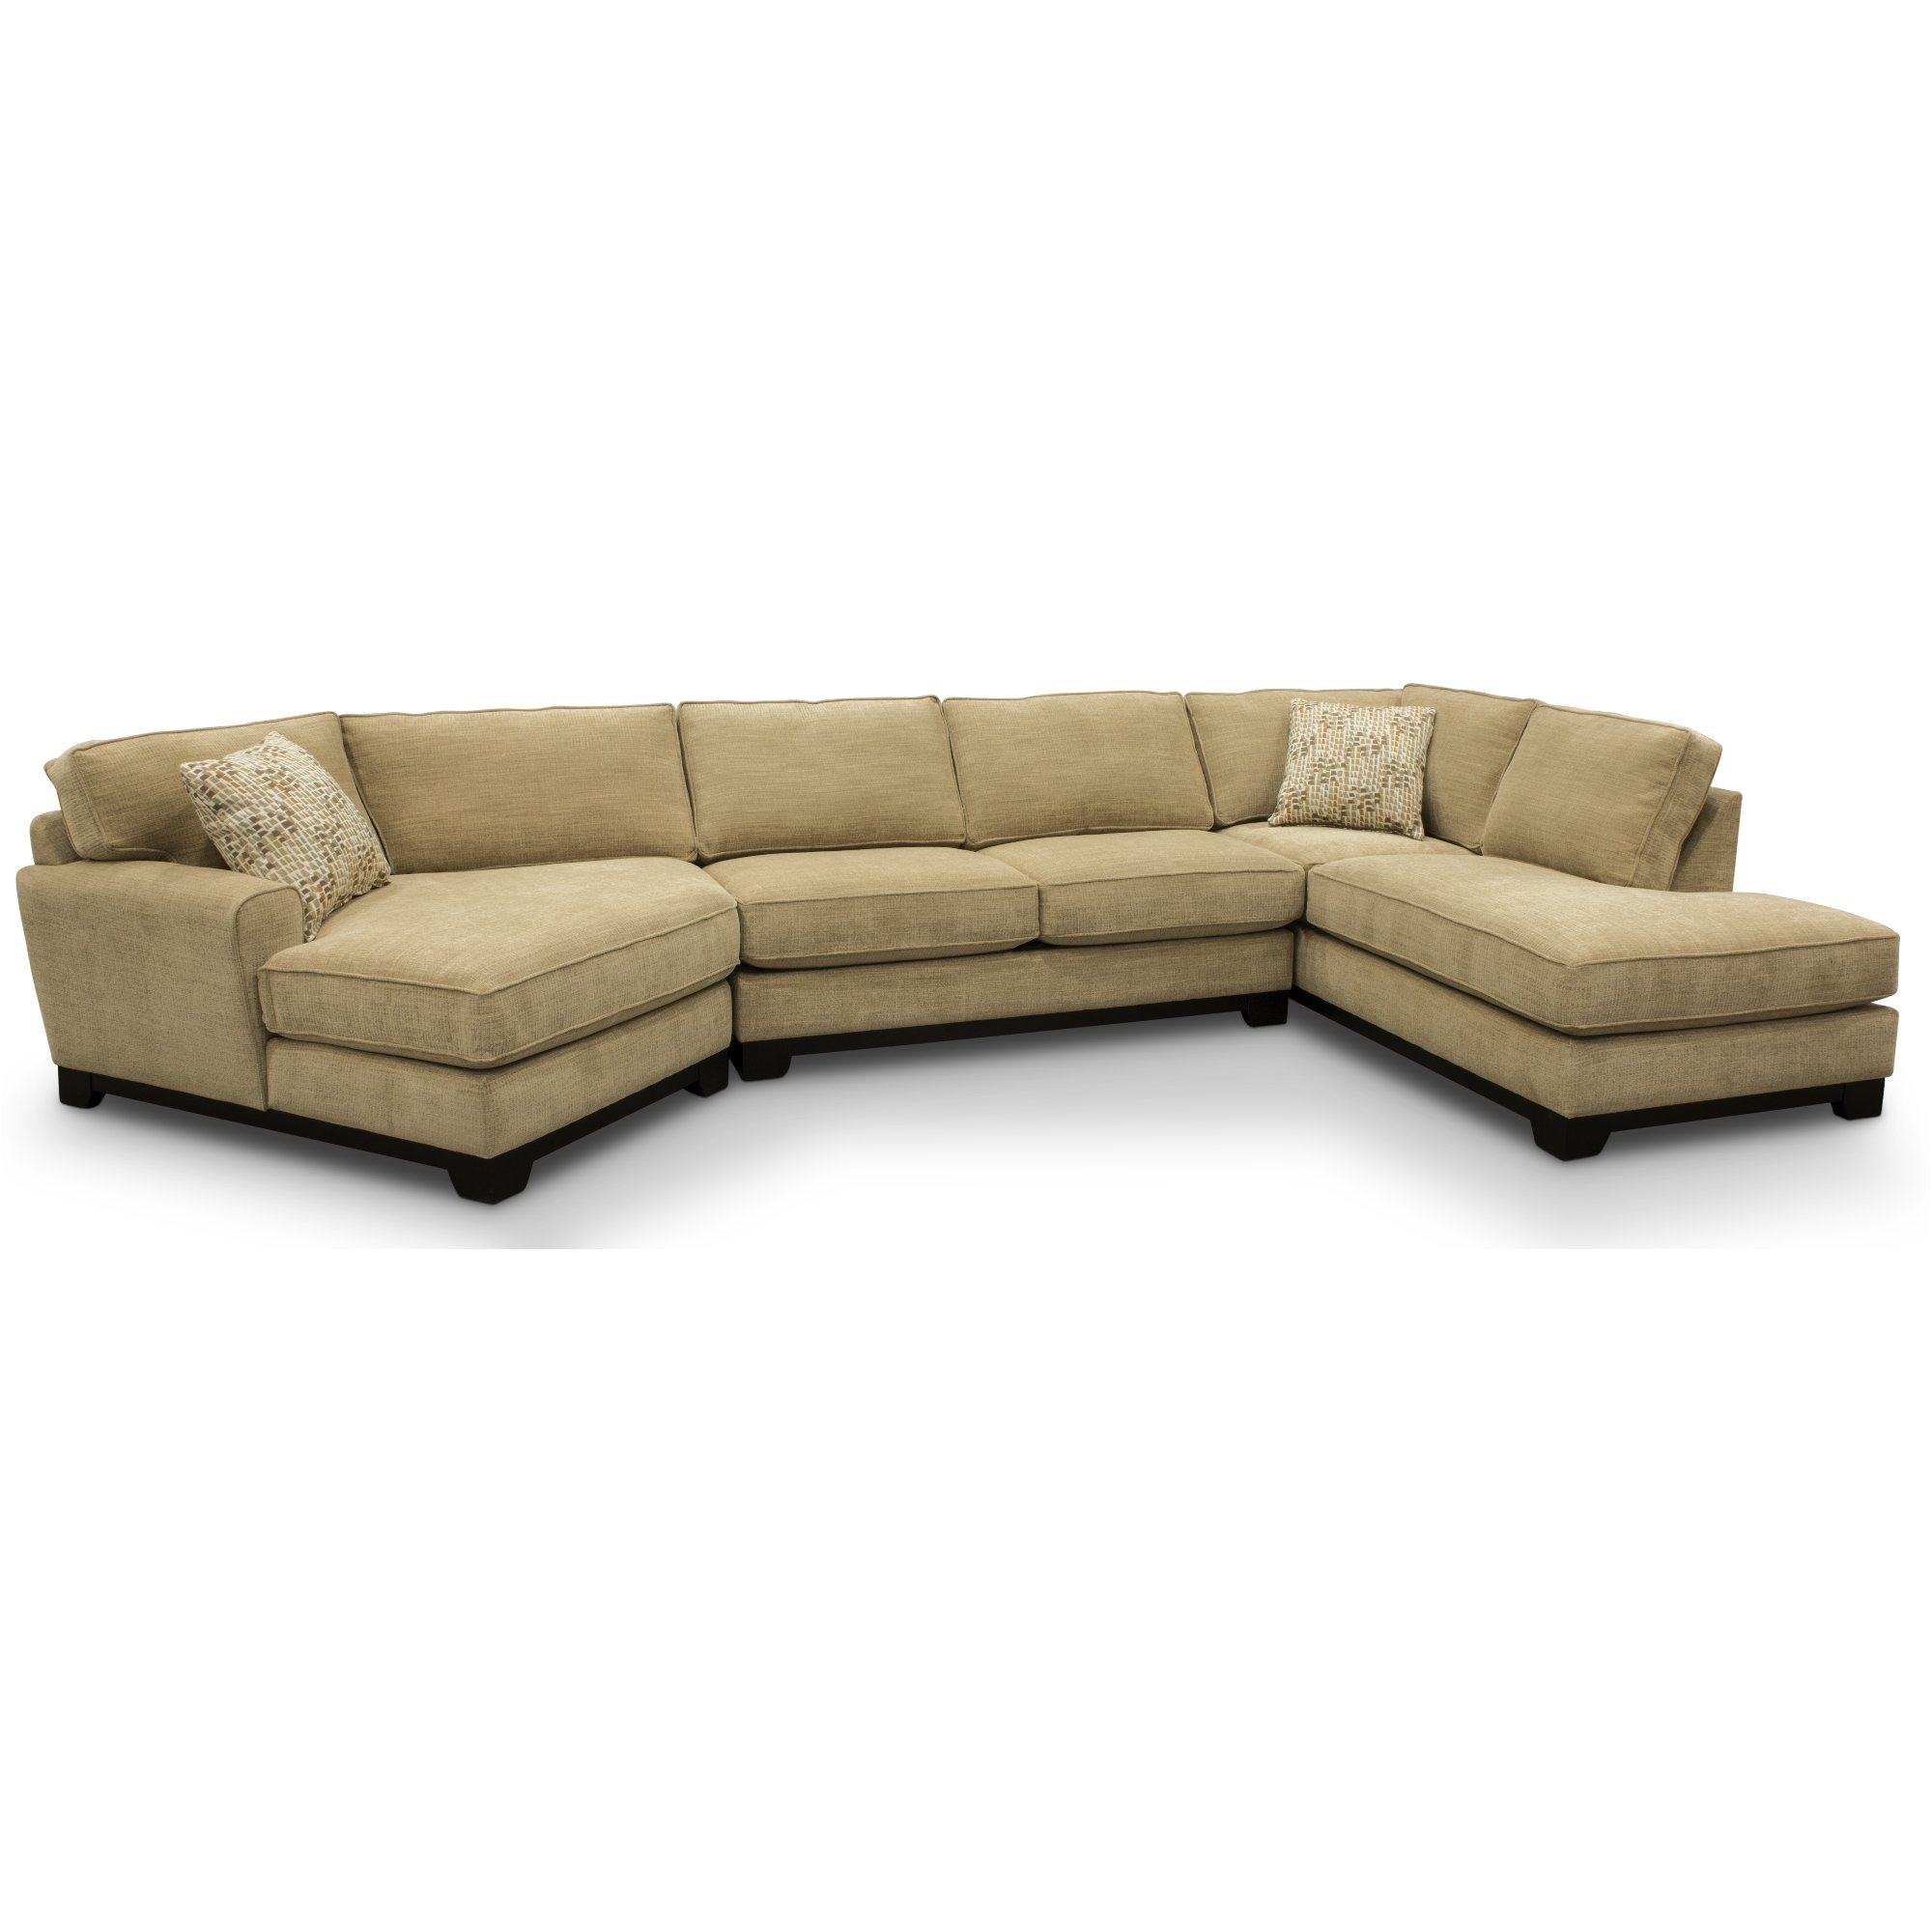 Beige 3 Piece Sectional Sofa with RAF Chaise - Pisces | RC ...